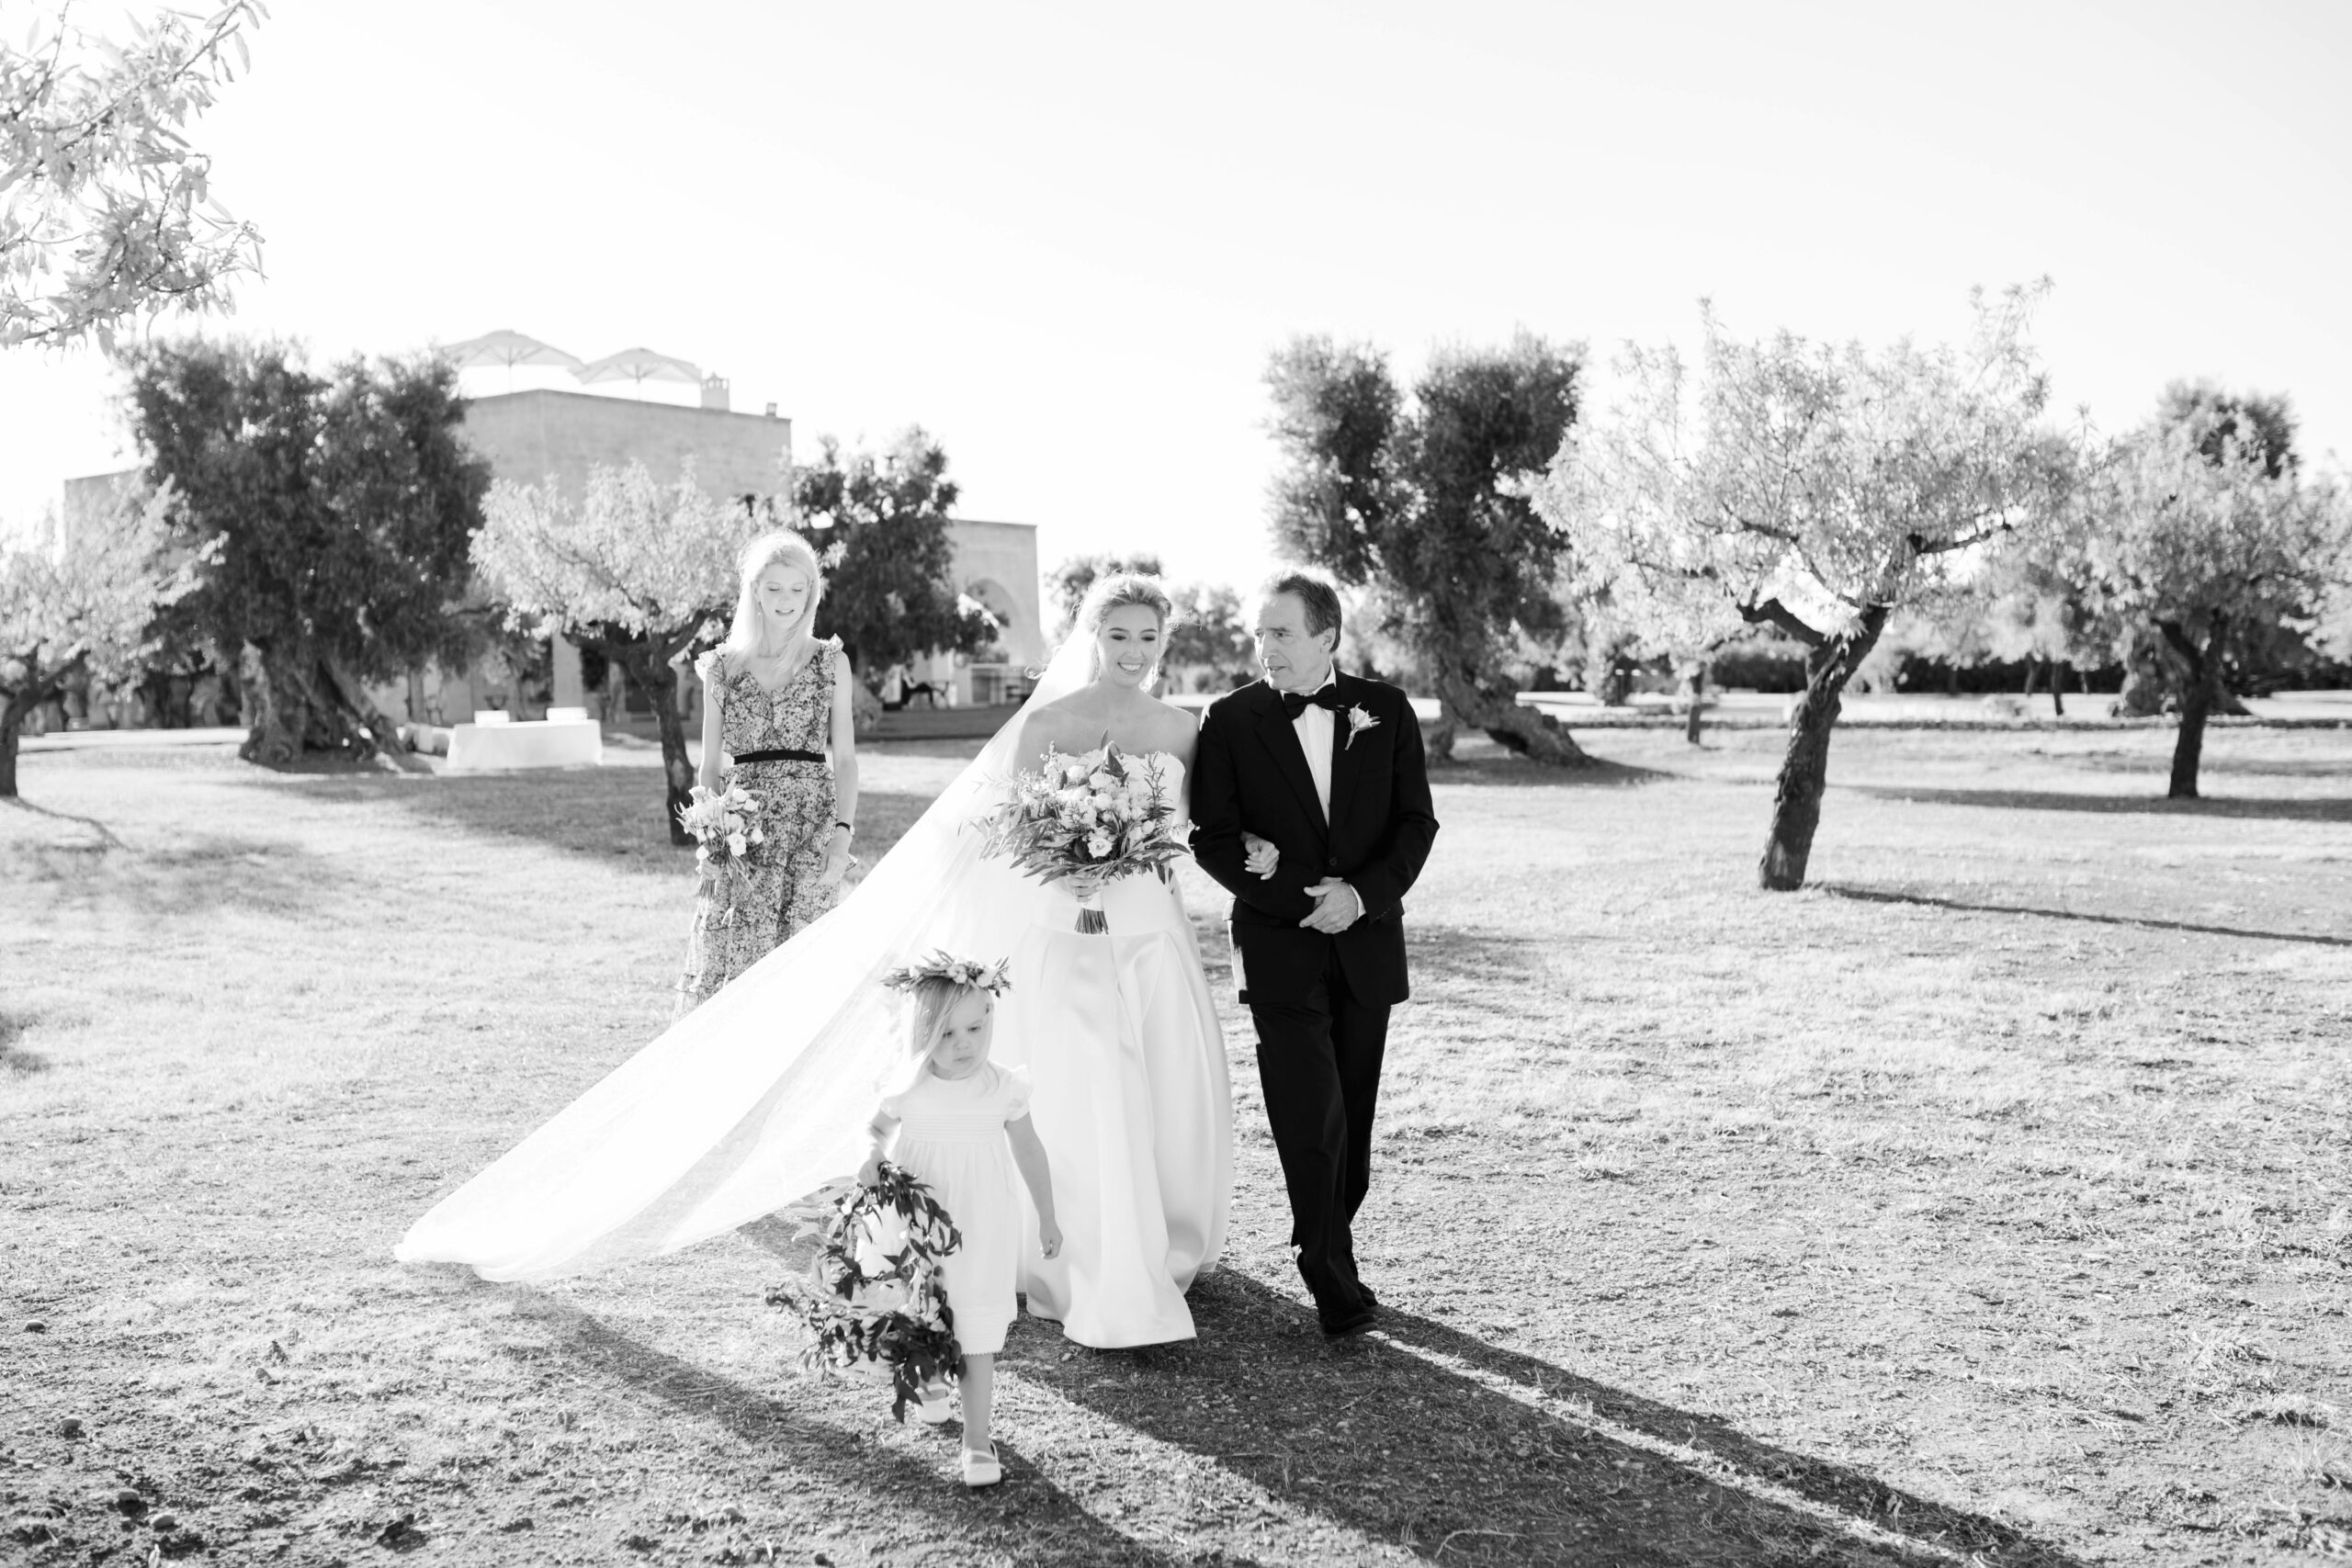 This beautiful wedding took place in Abbazia San Pietro in Valle, nestled in the hills of Umbria near Terni, Italy.